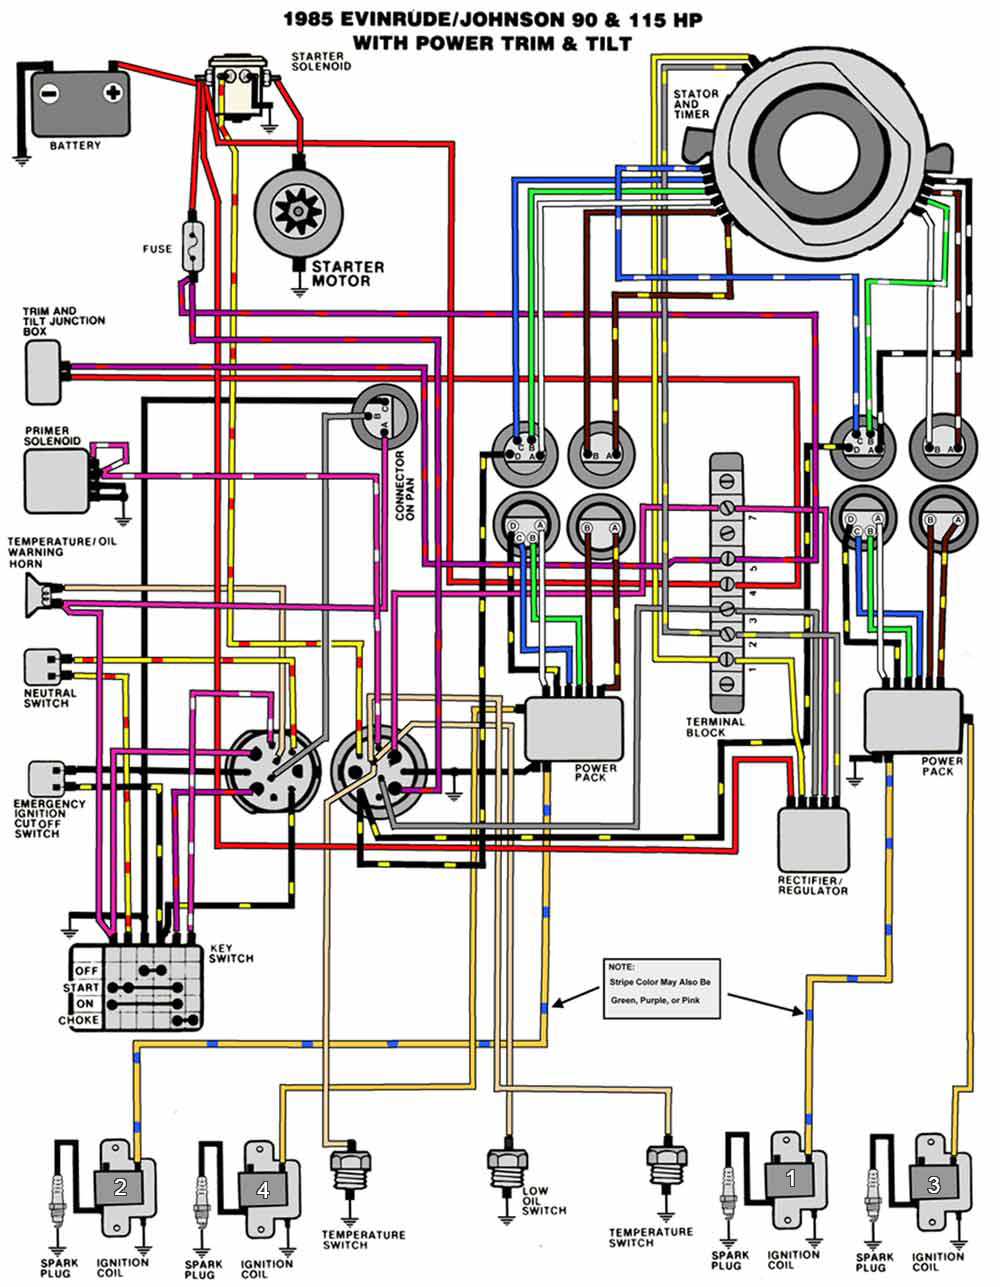 1985_90_115TnT mastertech marine evinrude johnson outboard wiring diagrams  at et-consult.org